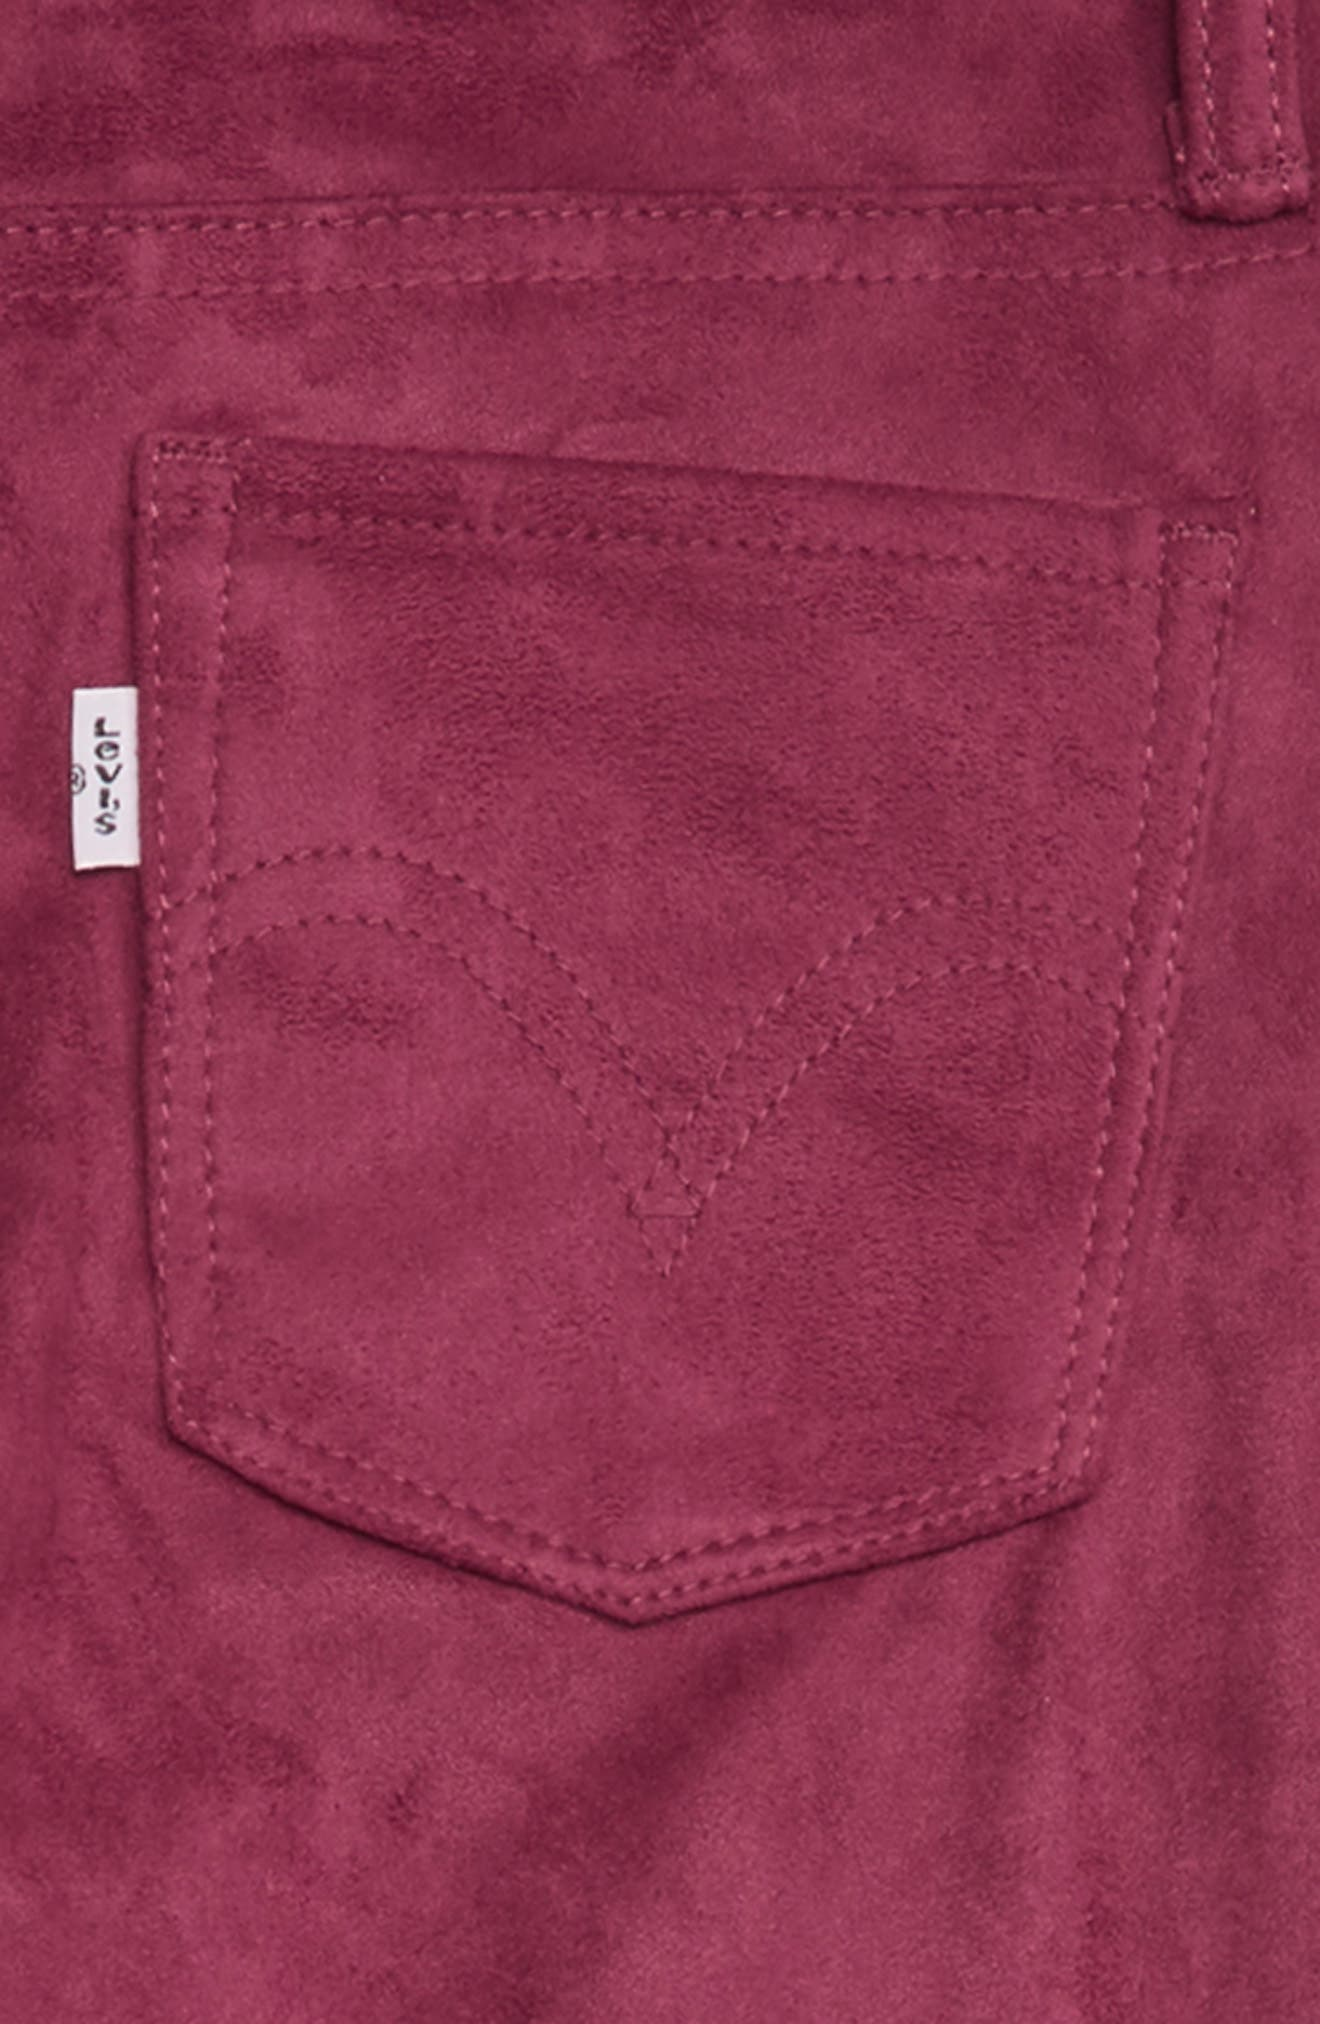 710<sup>™</sup> Super Skinny Faux Suede Jeans,                             Alternate thumbnail 3, color,                             BEET RED